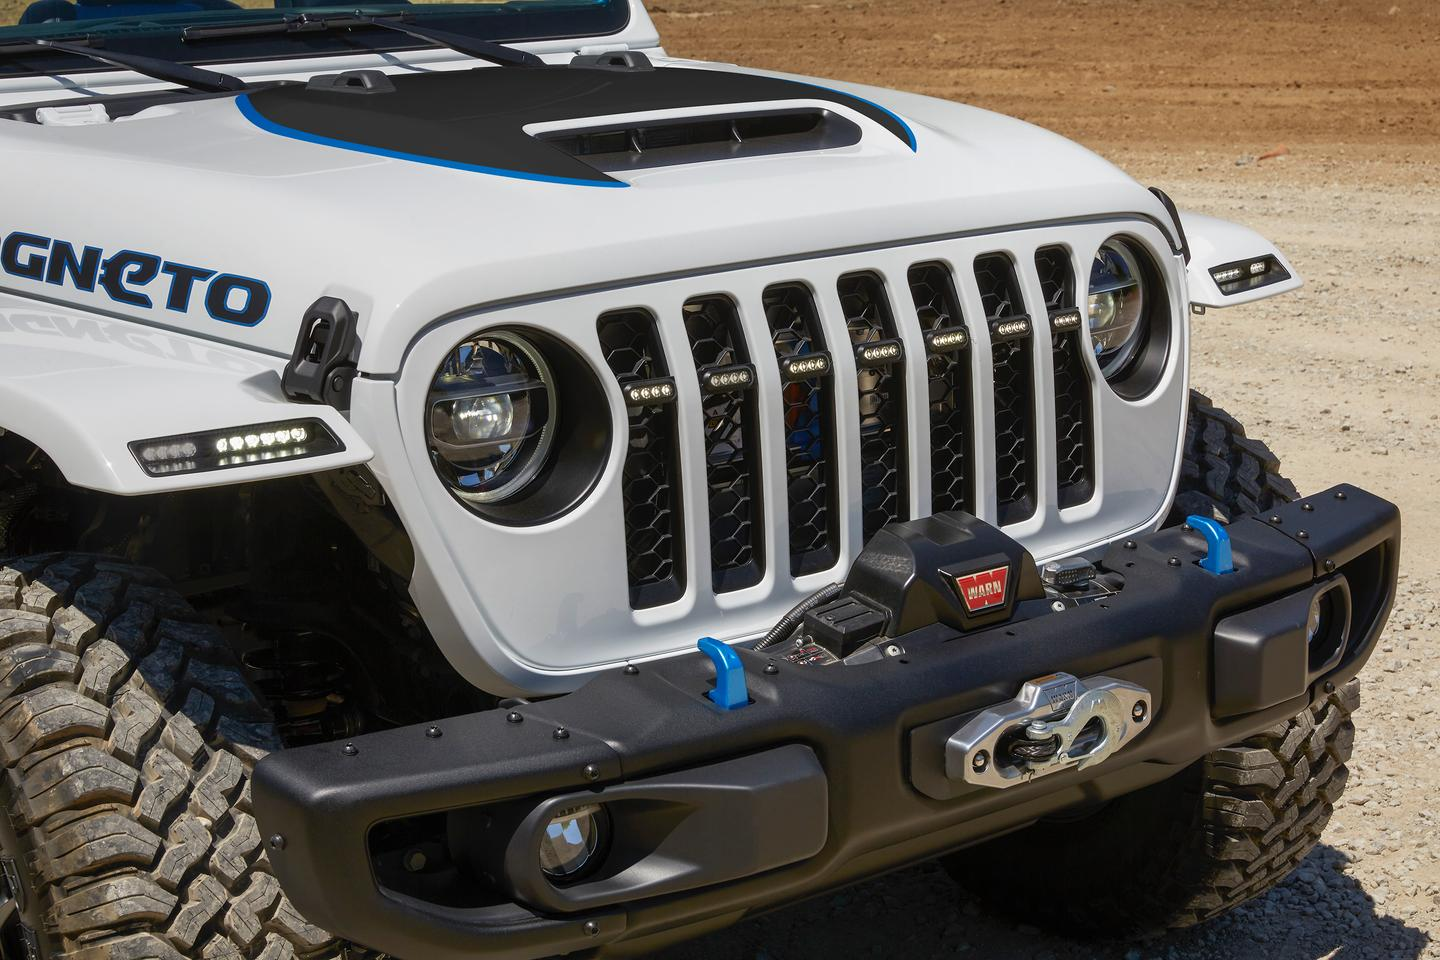 With its Rubicon base package, manual transmission, 2-in lift, 35-in mud-terrain tires and steel bumpers with front winch, the Wrangler Magneto proves that off-roaders don't have to give up filthy fun to go electric